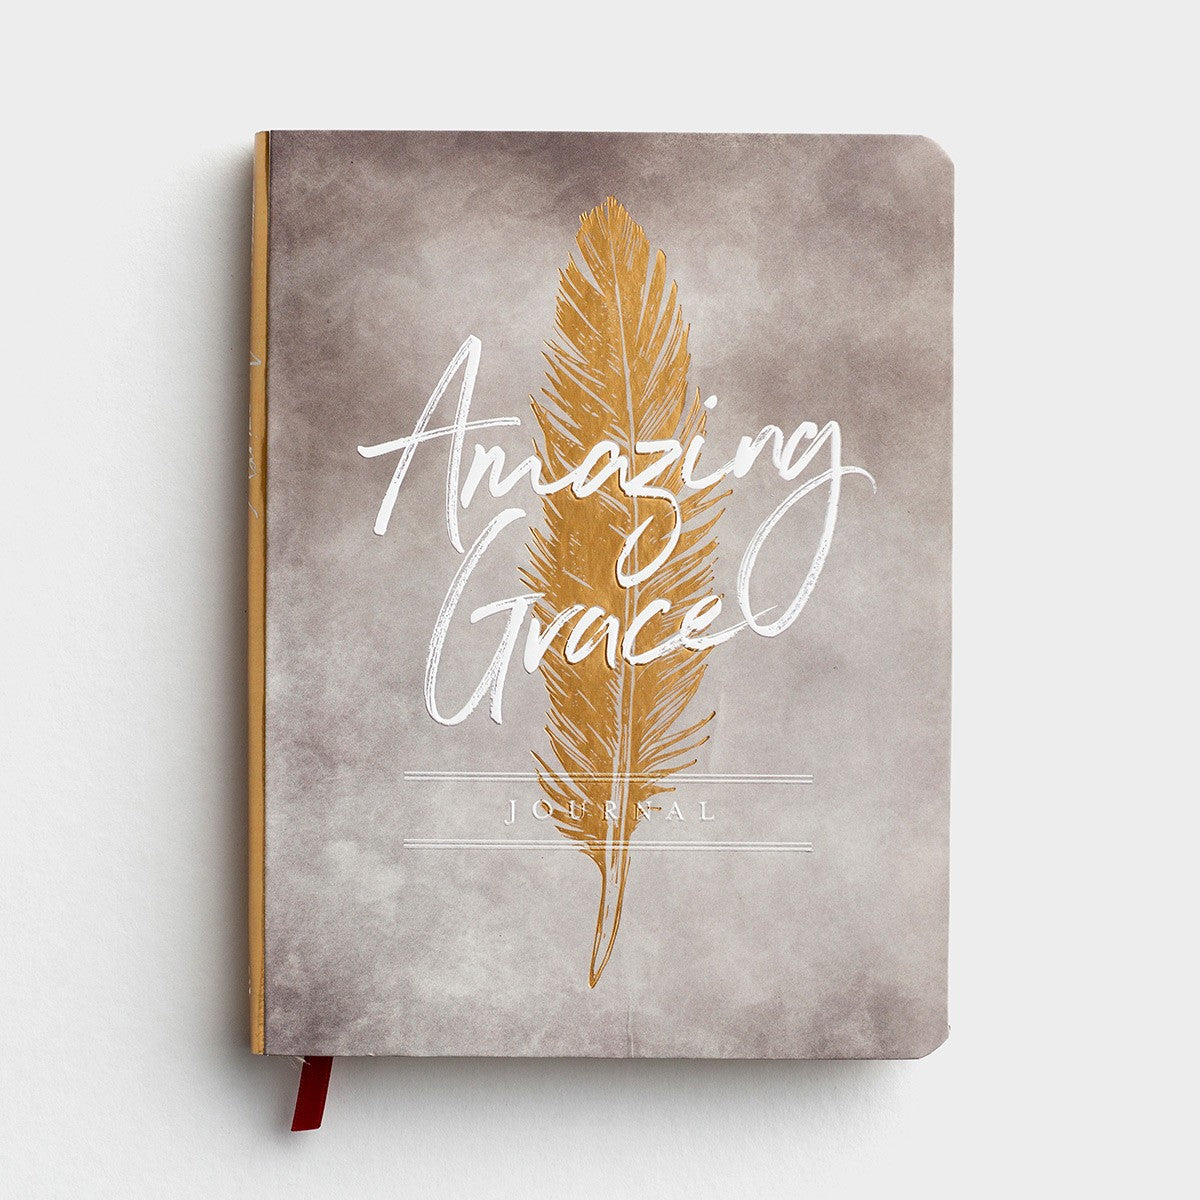 ROCKONLINE | New Creation Church | NCC | Joseph Prince | ROCK Bookshop | ROCK Bookstore | Star Vista | Flexcover Journal Amazing Grace | Journal | Illustration | Bible Verses |  Dayspring | Devotional | Free delivery for Singapore Orders above $50.